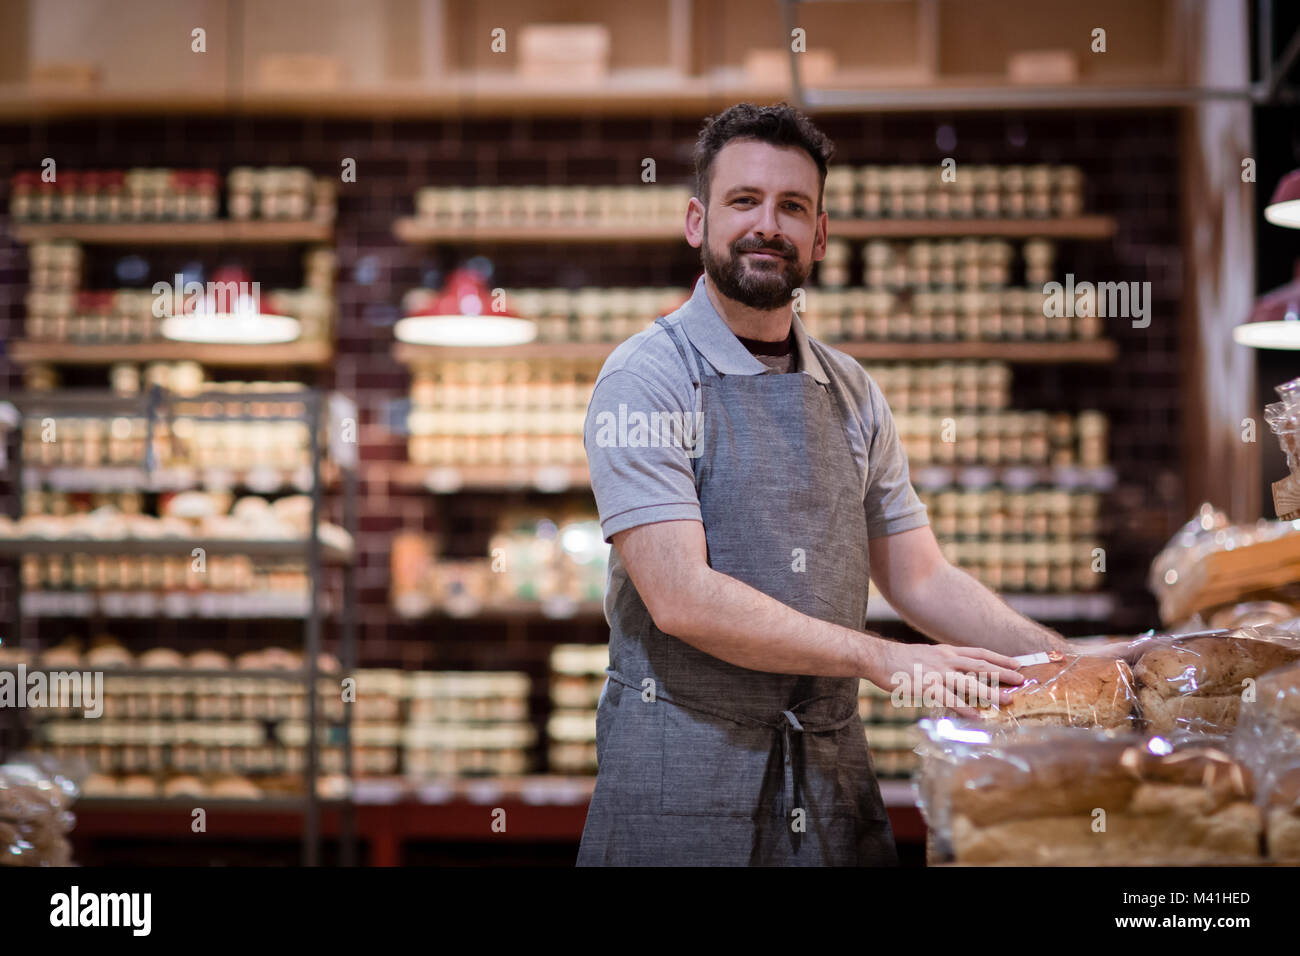 Baker in bakery looking to camera - Stock Image